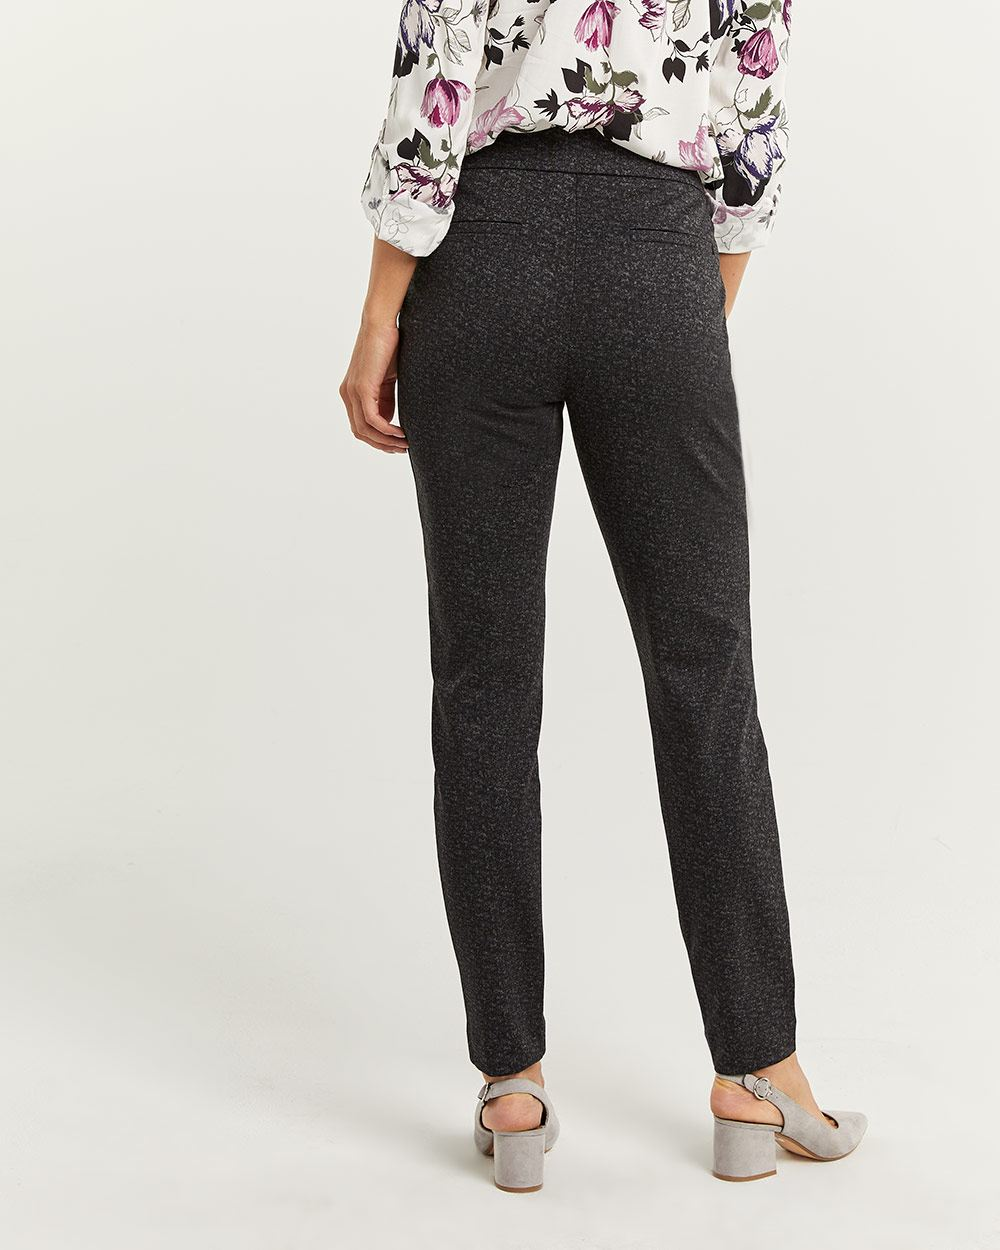 Patterned Leggings The Modern Stretch - Petite